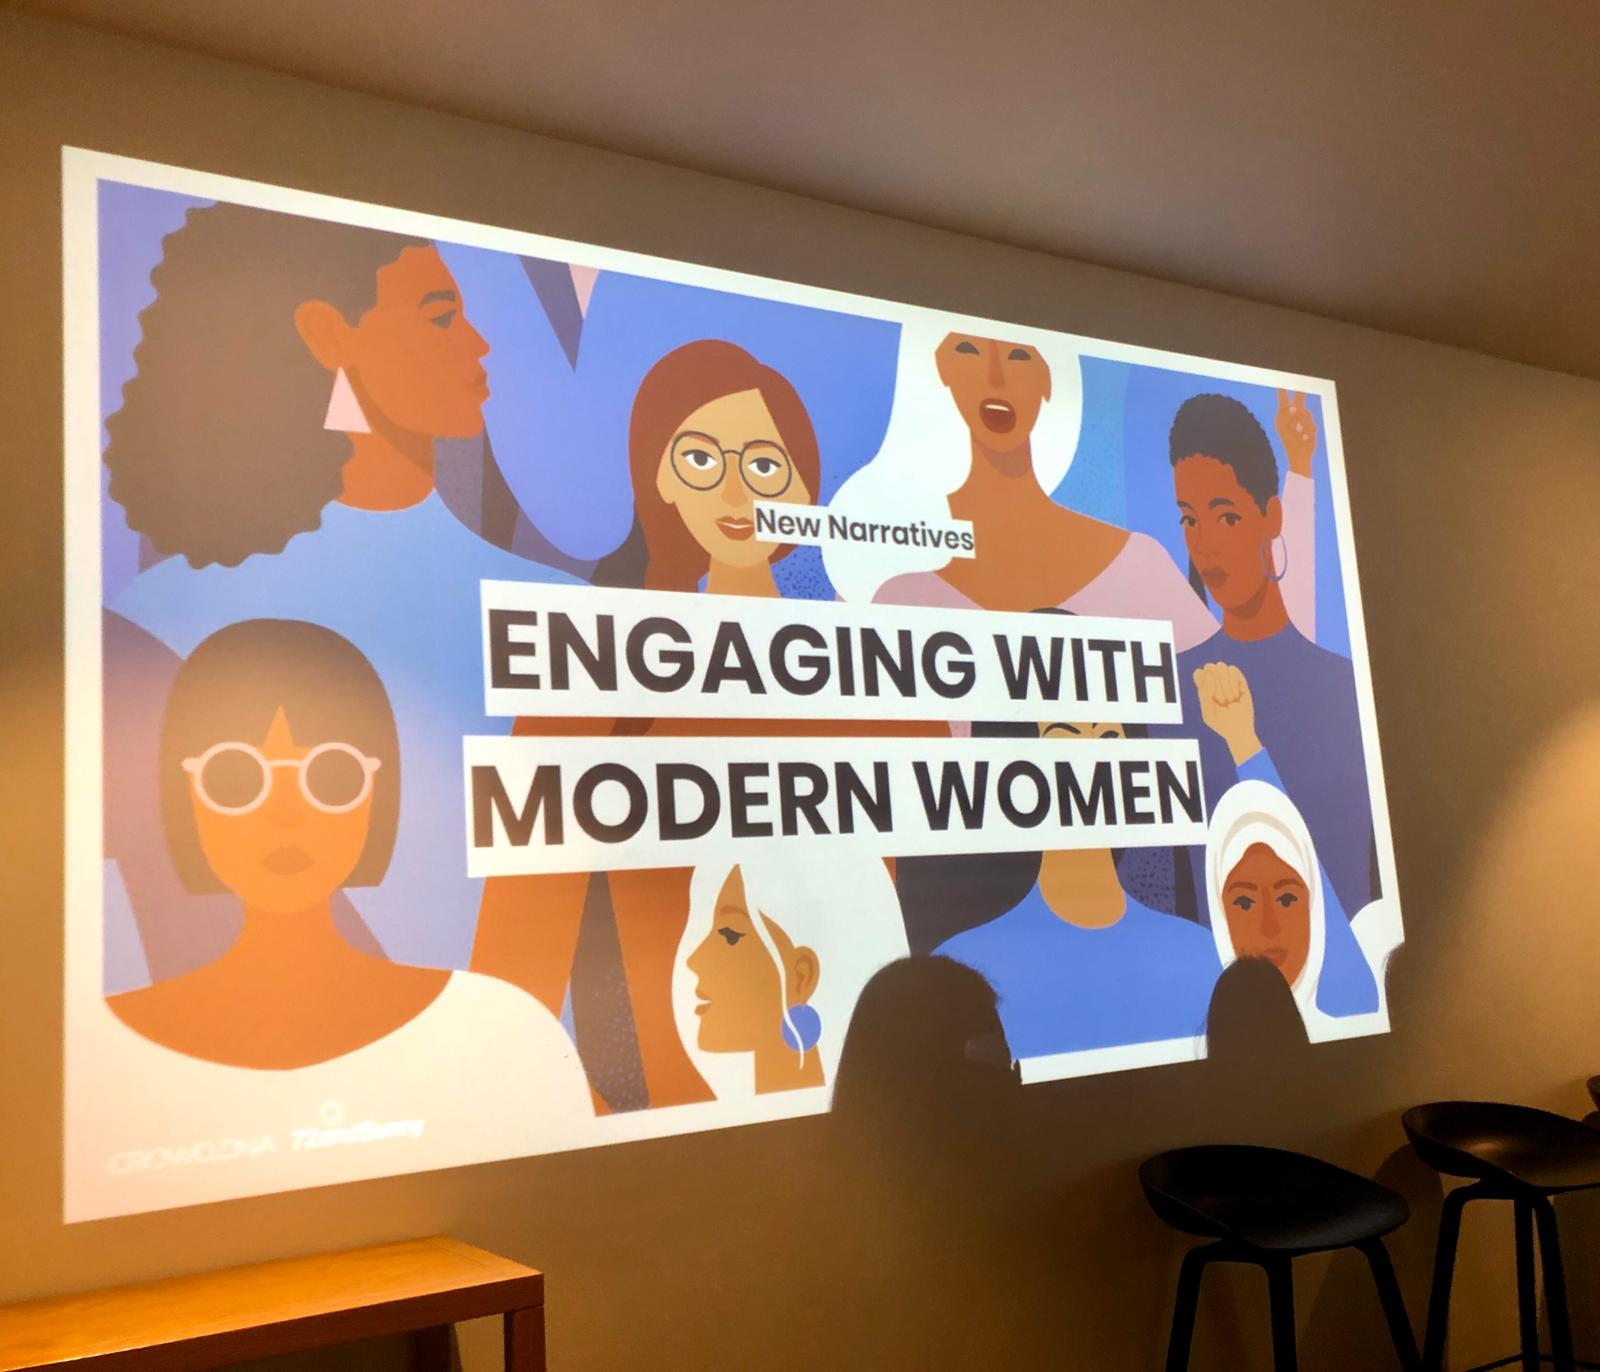 72andSunny, Crowd DNA + Lion's New Narratives: Engaging With Modern Women event a success